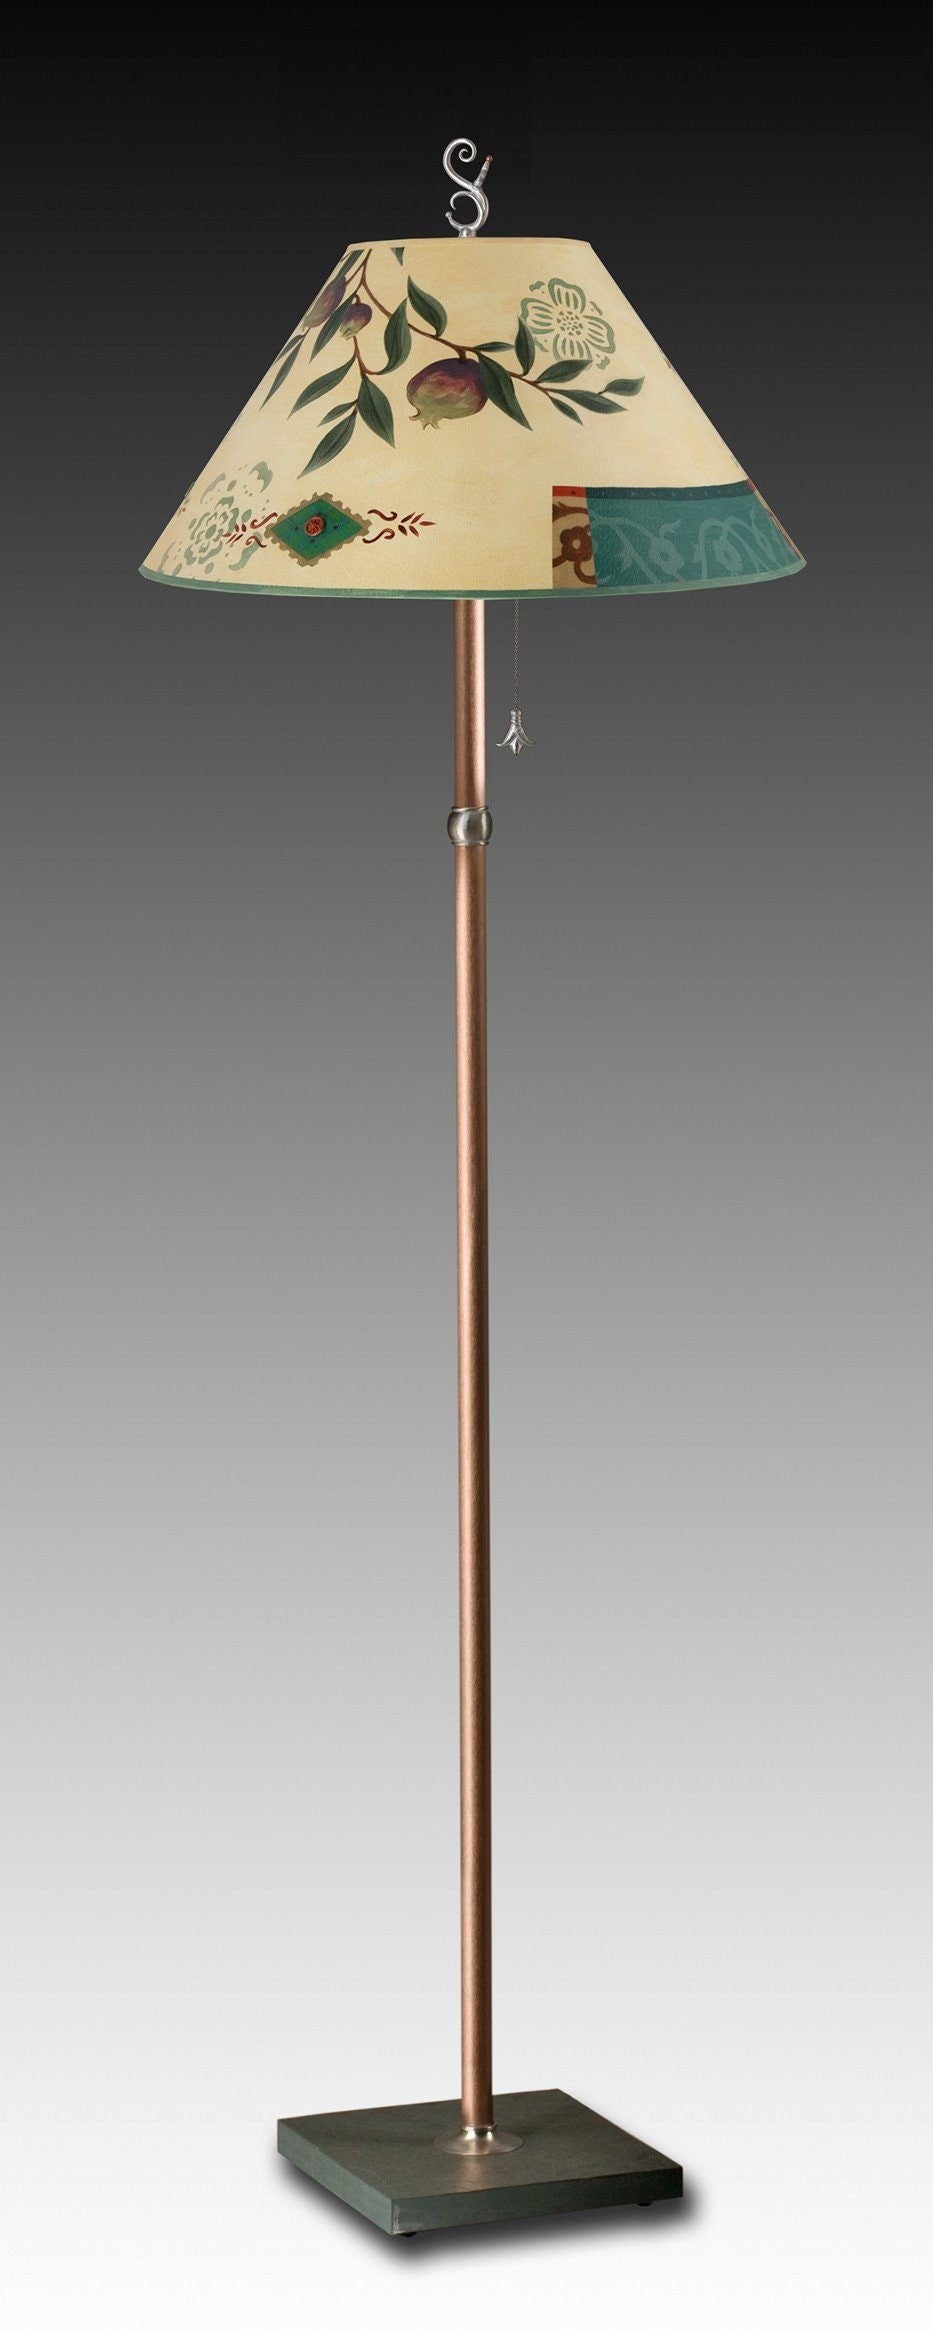 Copper Floor Lamp on Vermont Slate Base with Large Conical Shade in Pomegranate Ribbon